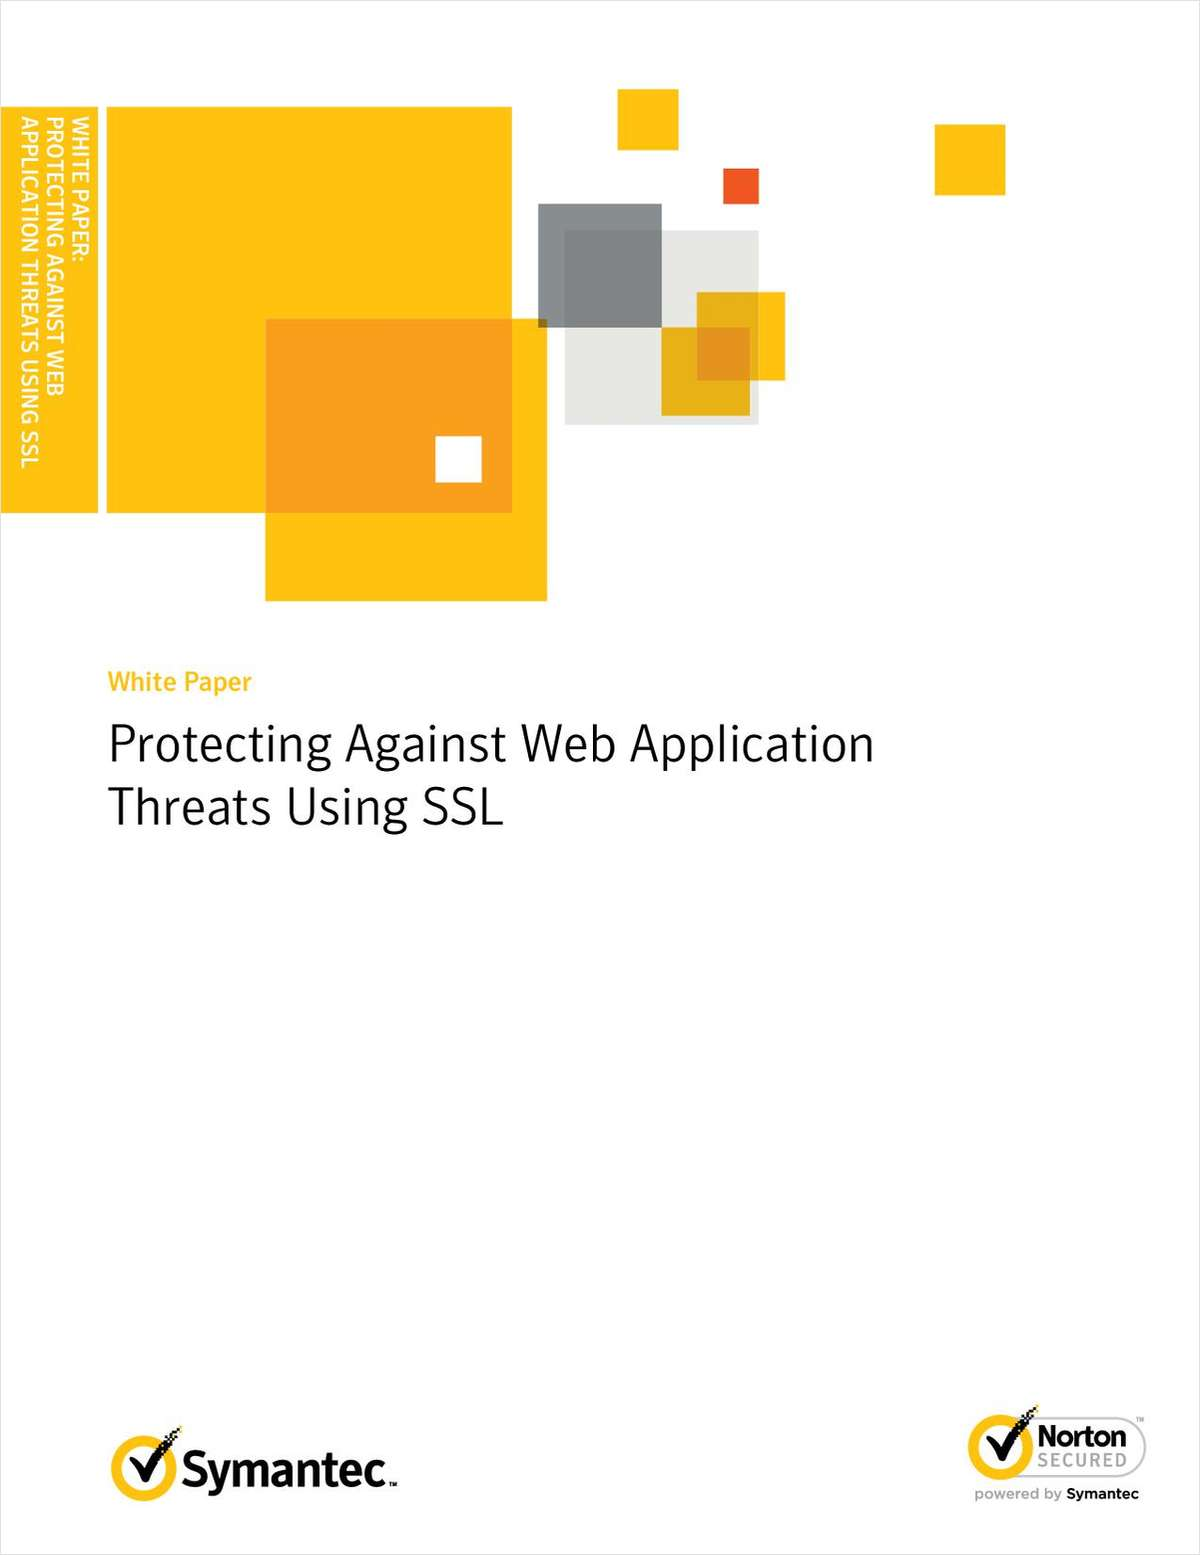 Short Guide to Protecting Against Web Application Threats